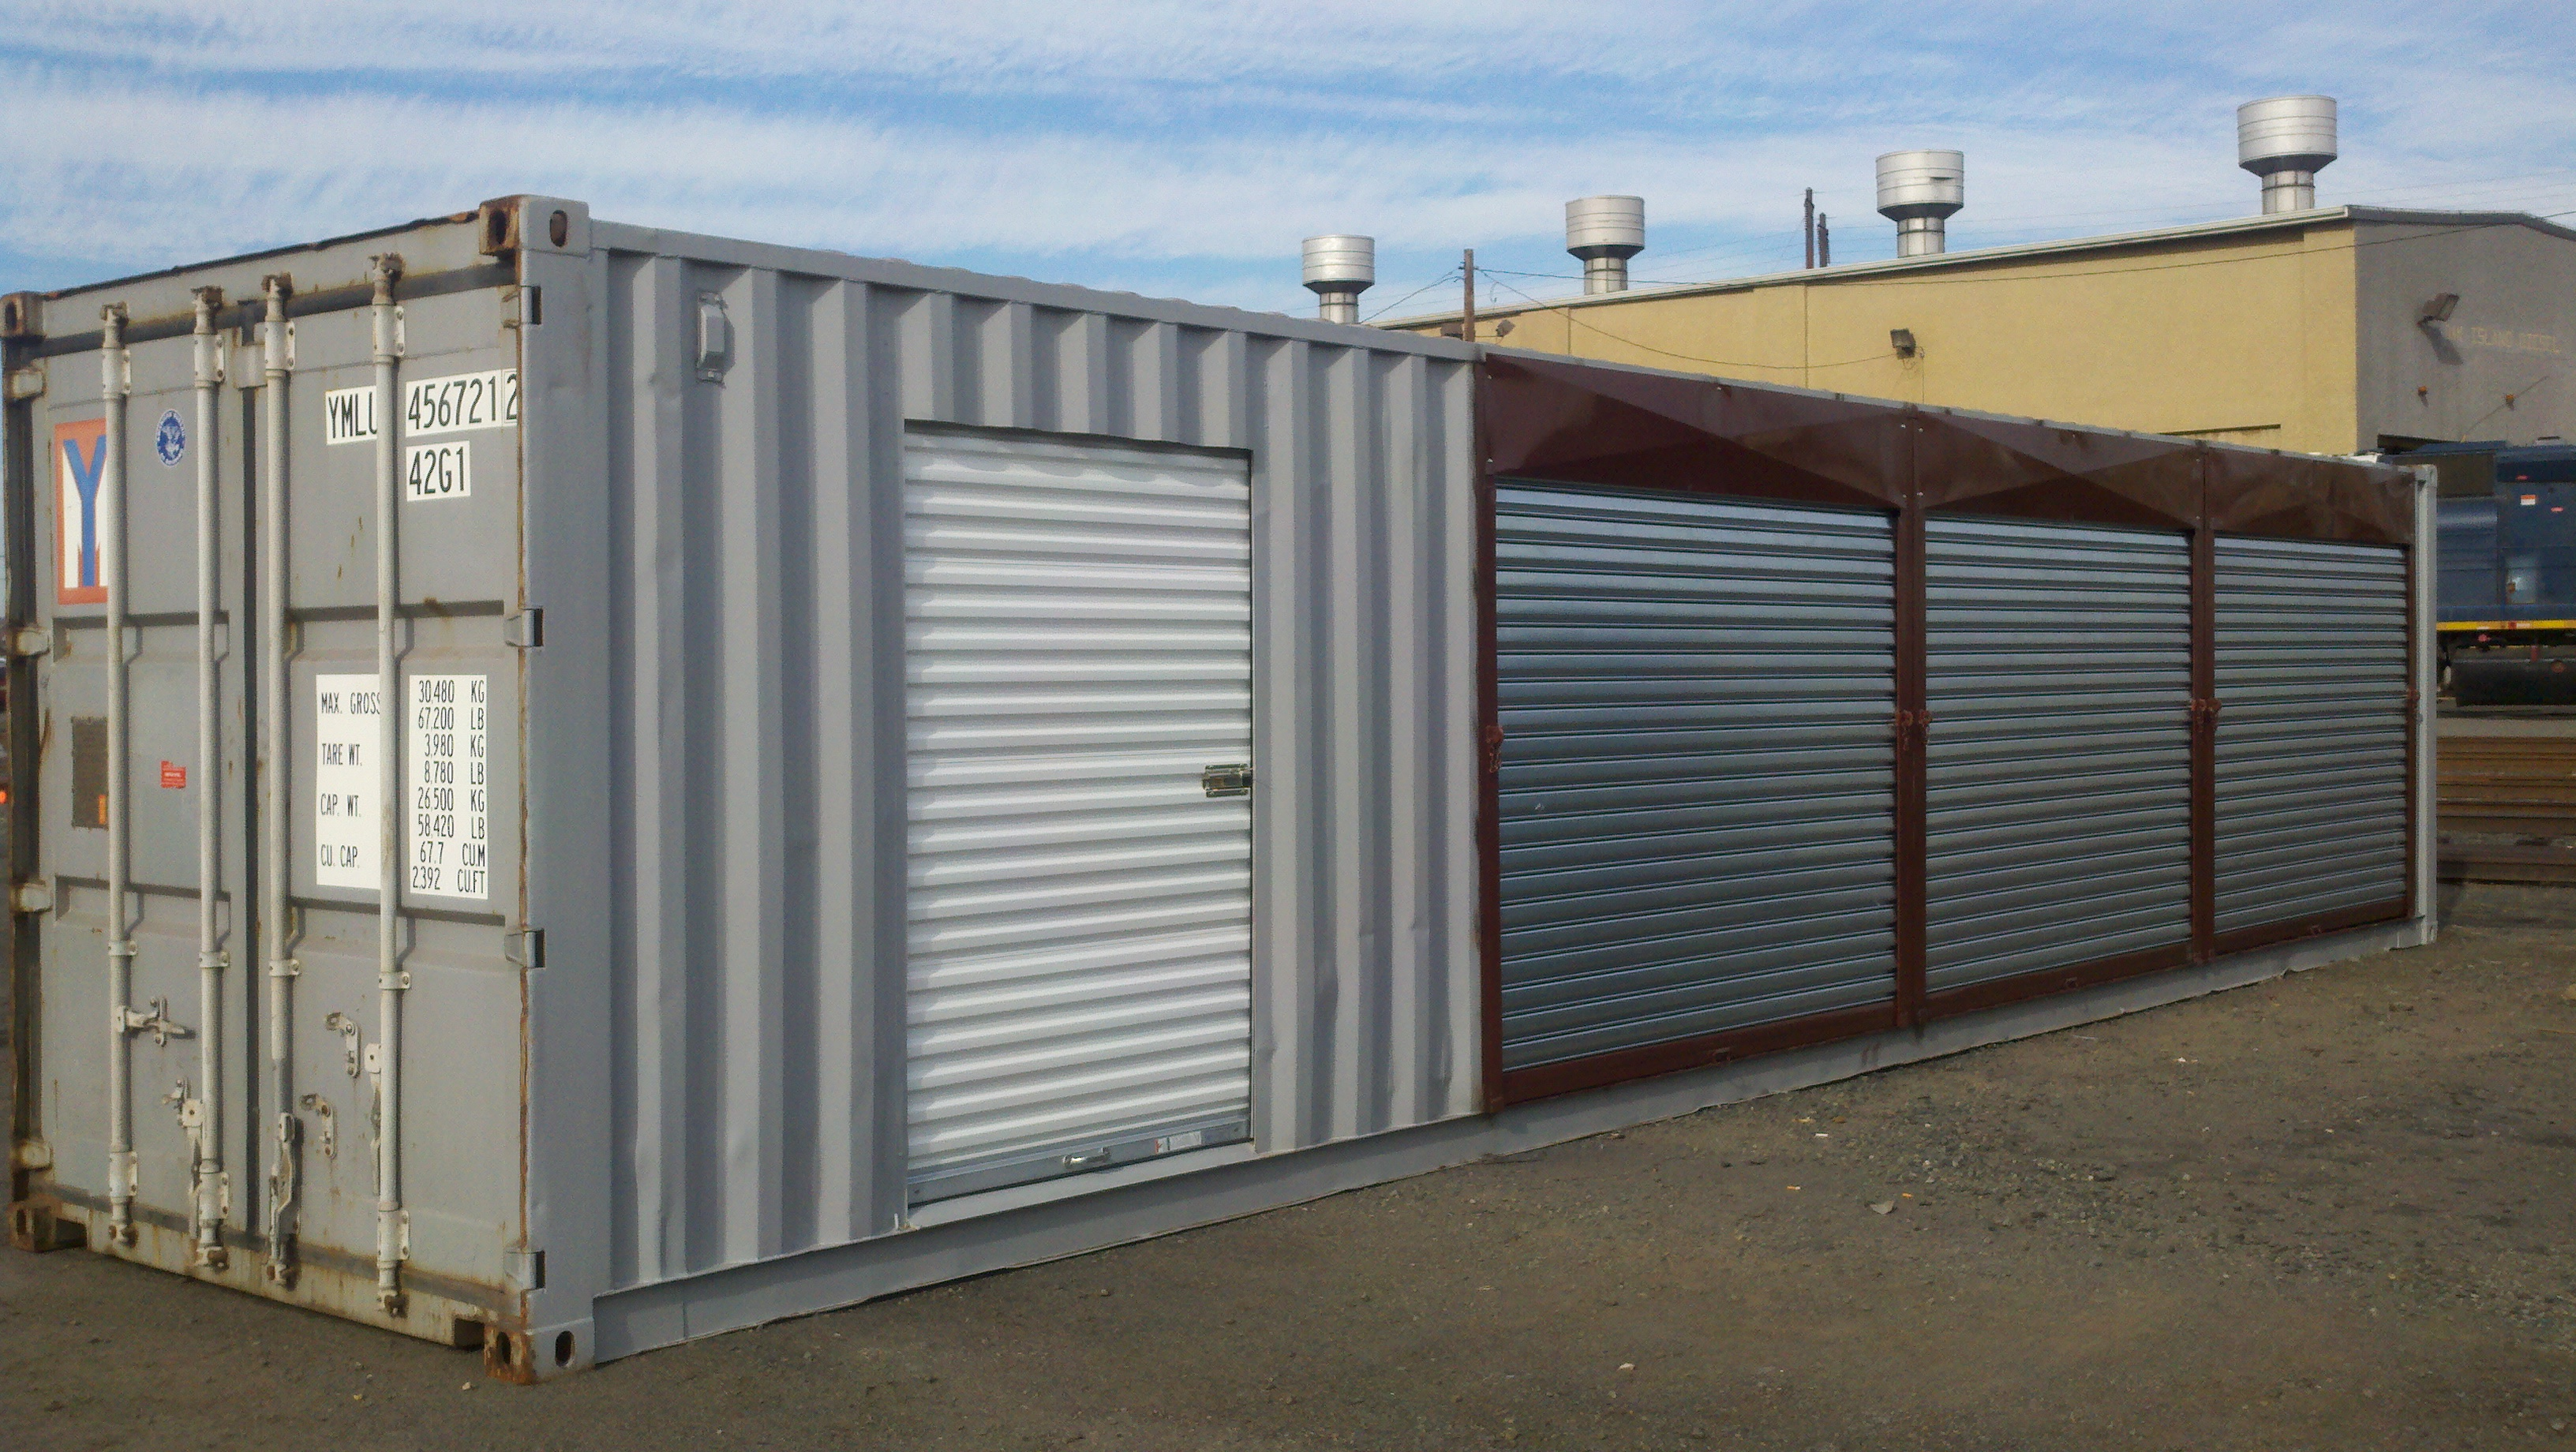 Intercube containers in stonington ct 06355 Shipping containers for sale in minnesota